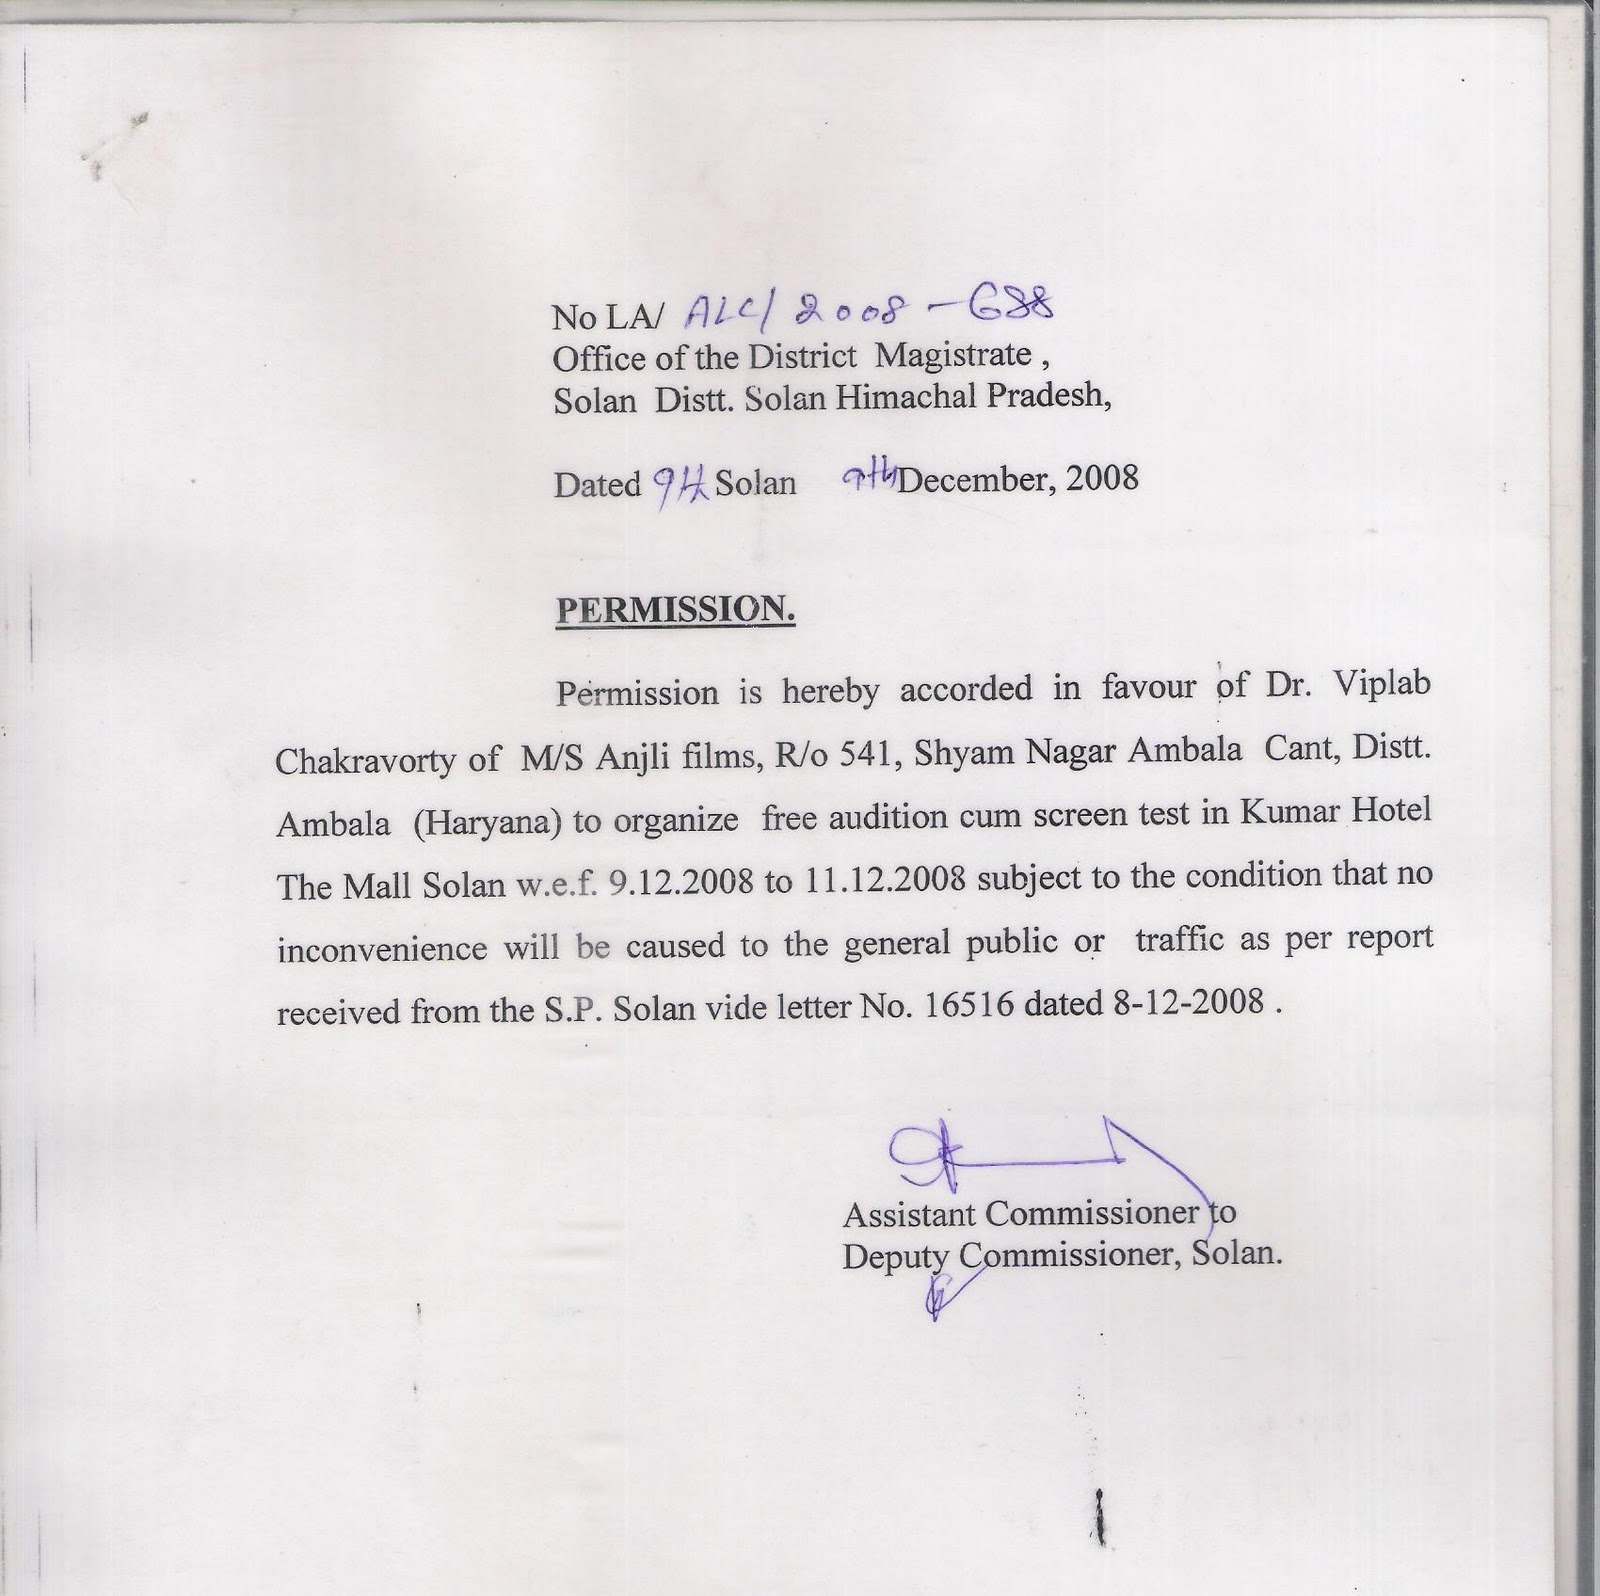 permission letter for free audition cum screen test from additional deputy commissionersolan hp india